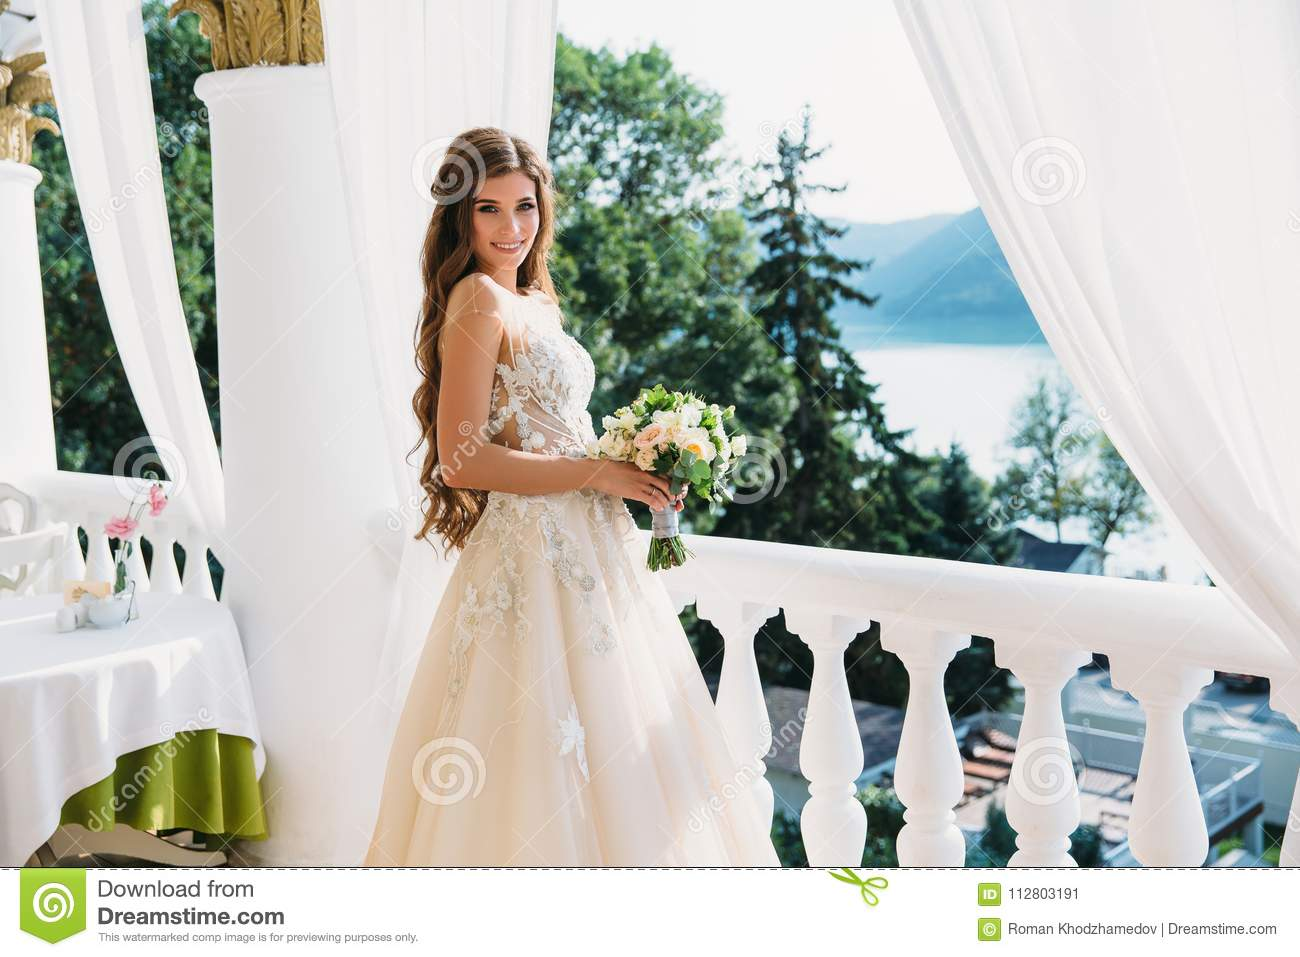 Dresses wedding under 1000 dollars